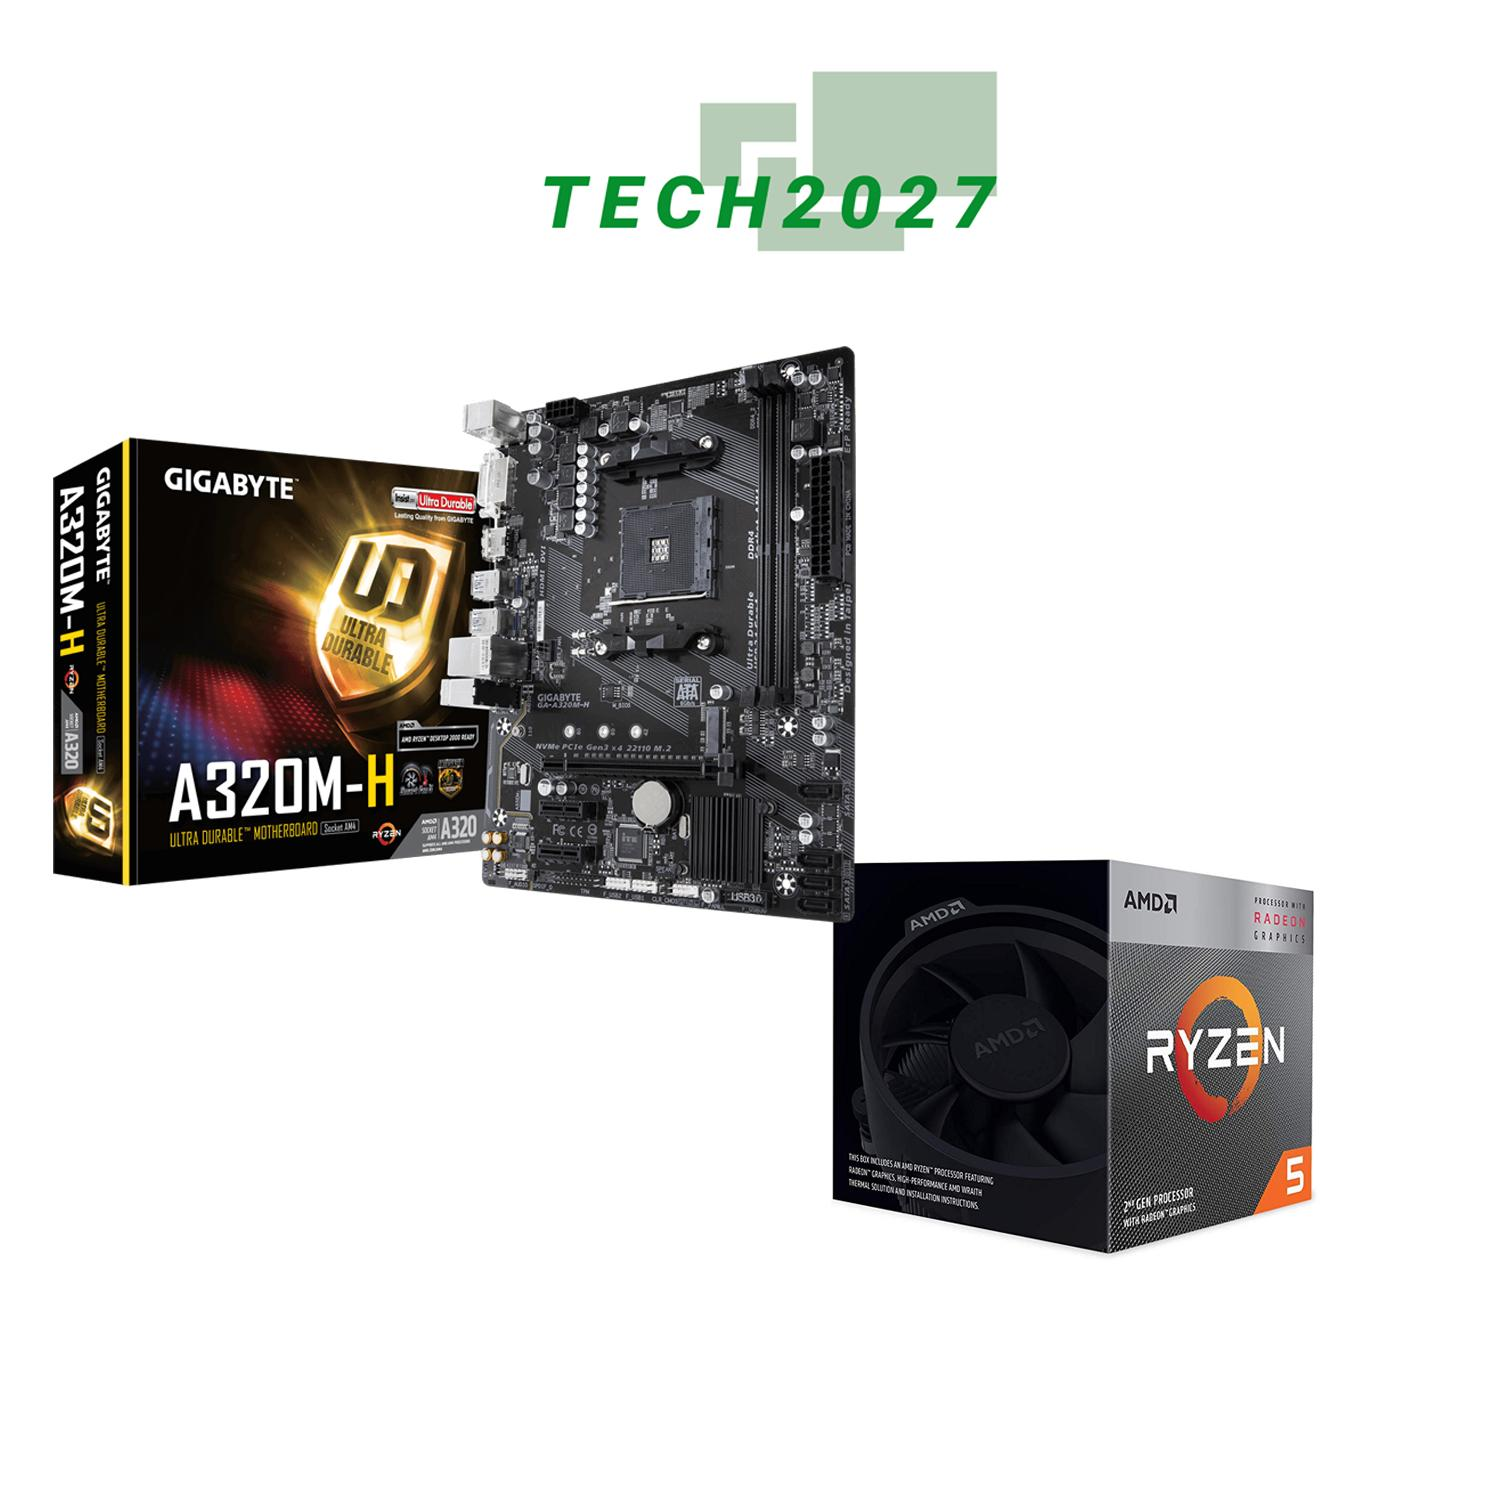 AMD RYZEN 5 3400G 4-Core 3 7 GHz WITH GIGABYTE A320M-H Motherboard